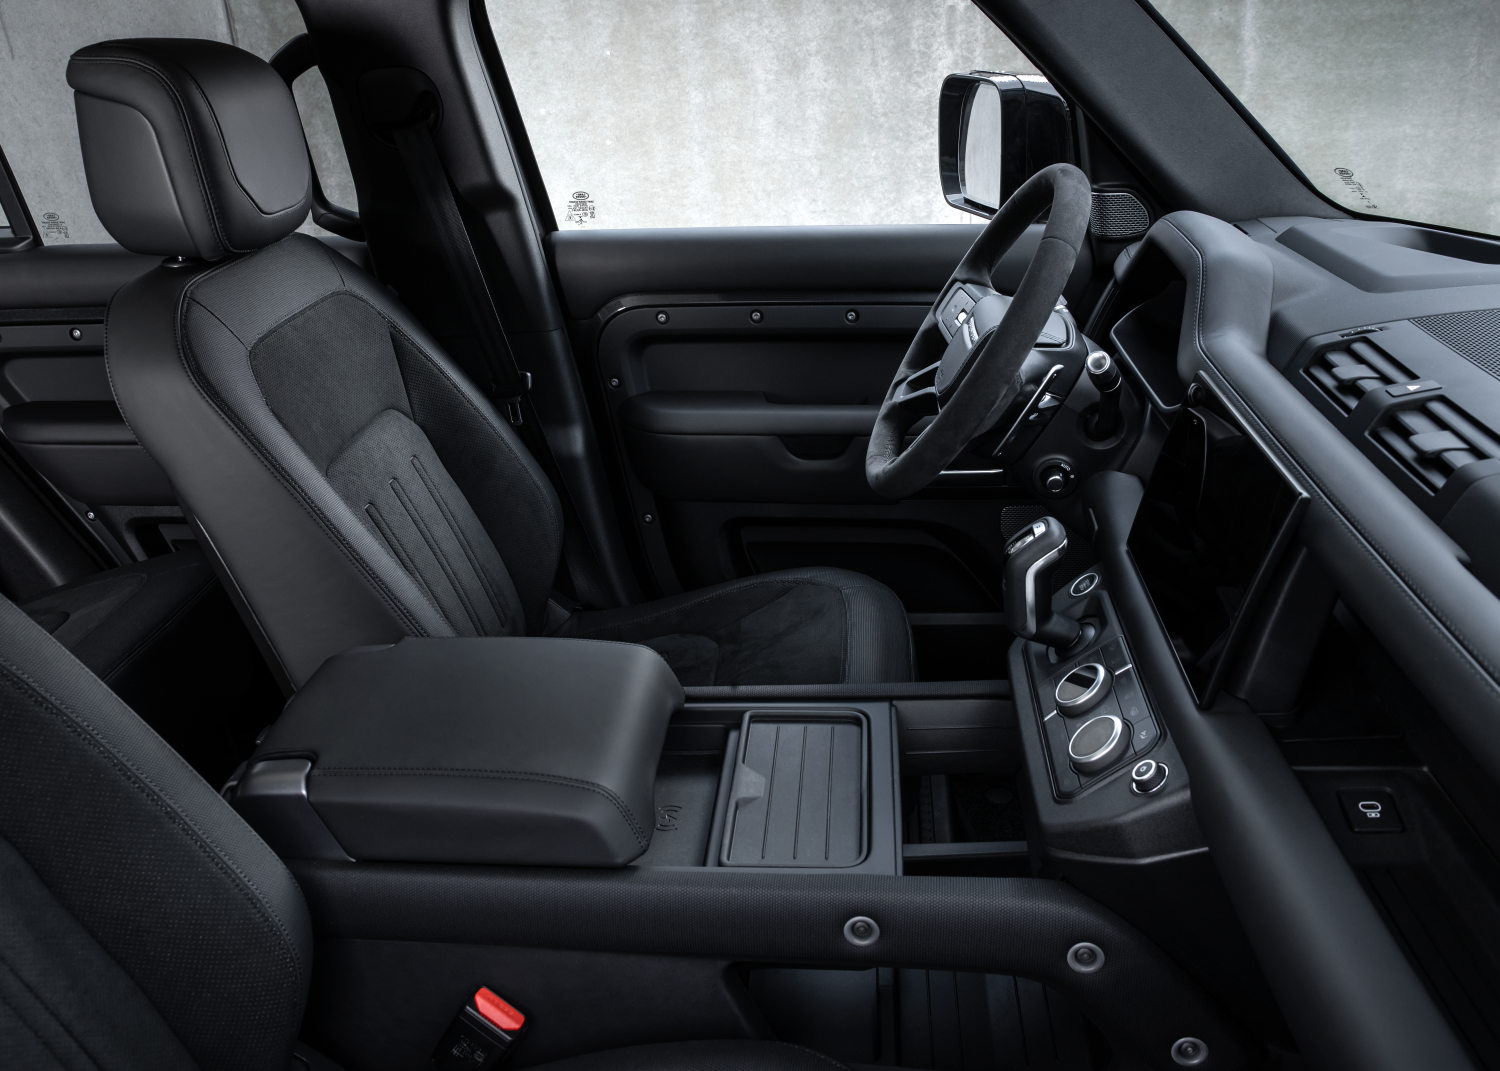 The Power of Choice: Potent New Defender V8 and Exclusive Special Editions Join the Range - Image 5